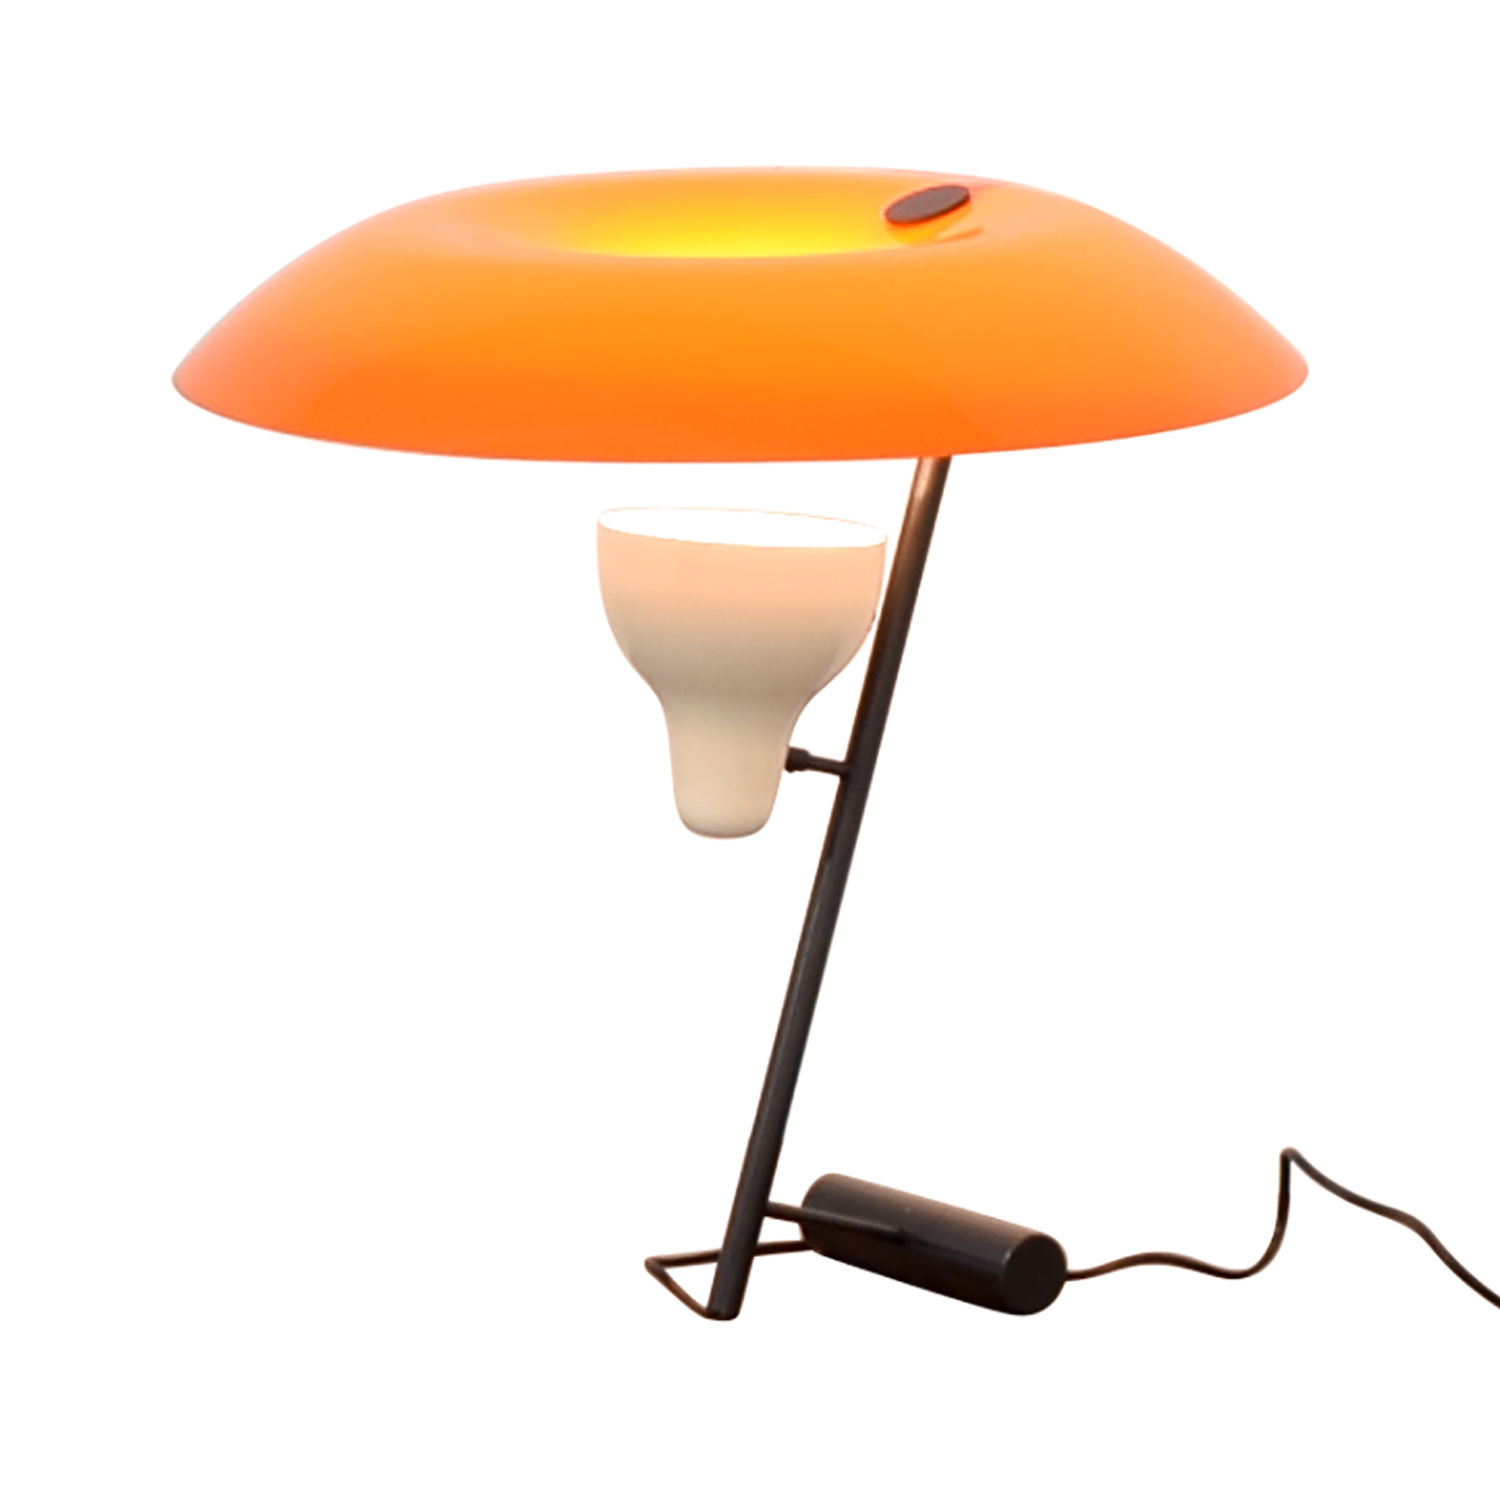 buy FLOS Gino Sarfatti Orange and Burnished Brass Table Lamp FLOS Lamps